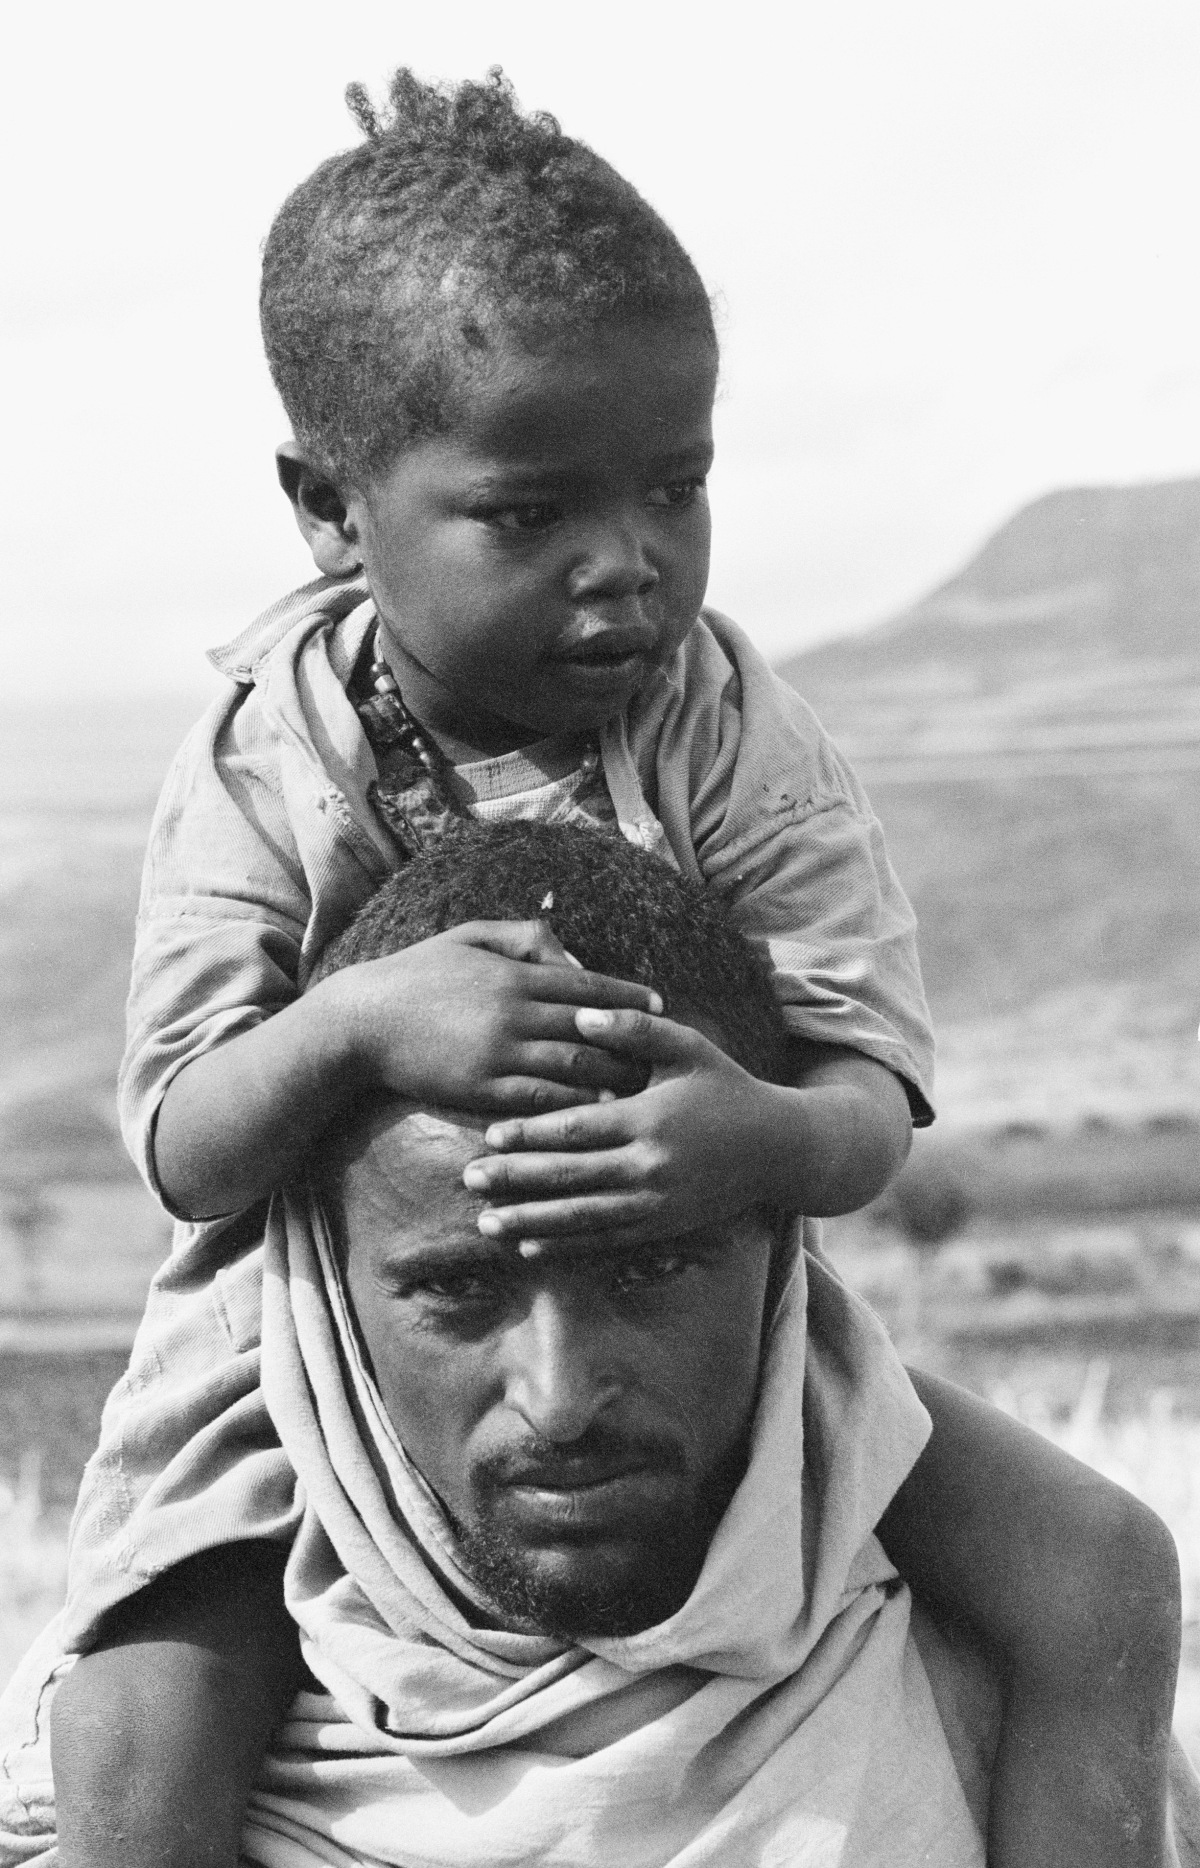 A child sits on his father's shoulders as they wait for food at a drought relief centre in the north-eastern town of Bati. Emergency food supplies and medicine are being rushed to relief centres in Bati and other drought-stricken areas.  In 1984 in Ethiopia, a severe drought has resulted in a devastating famine, killing more than 1 million people and leaving 7 million others facing malnutrition and starvation. Food and water are among the urgent necessities. The office of the United Nations High Commissioner for Refugees (UNHCR), the Food and Agriculture Organization (FAO), and UNICEF are among the international organizations that have rushed emergency assistance to famine-afflicted areas. UNICEF relief supplies include food, vaccines, blankets and water supply equipment. UNICEF, which estimates that, at minimum, more than 500,000 tonnes of food will be needed for 1985, is seeking an additional US $12.5 million in funding to help mitigate the crisis.